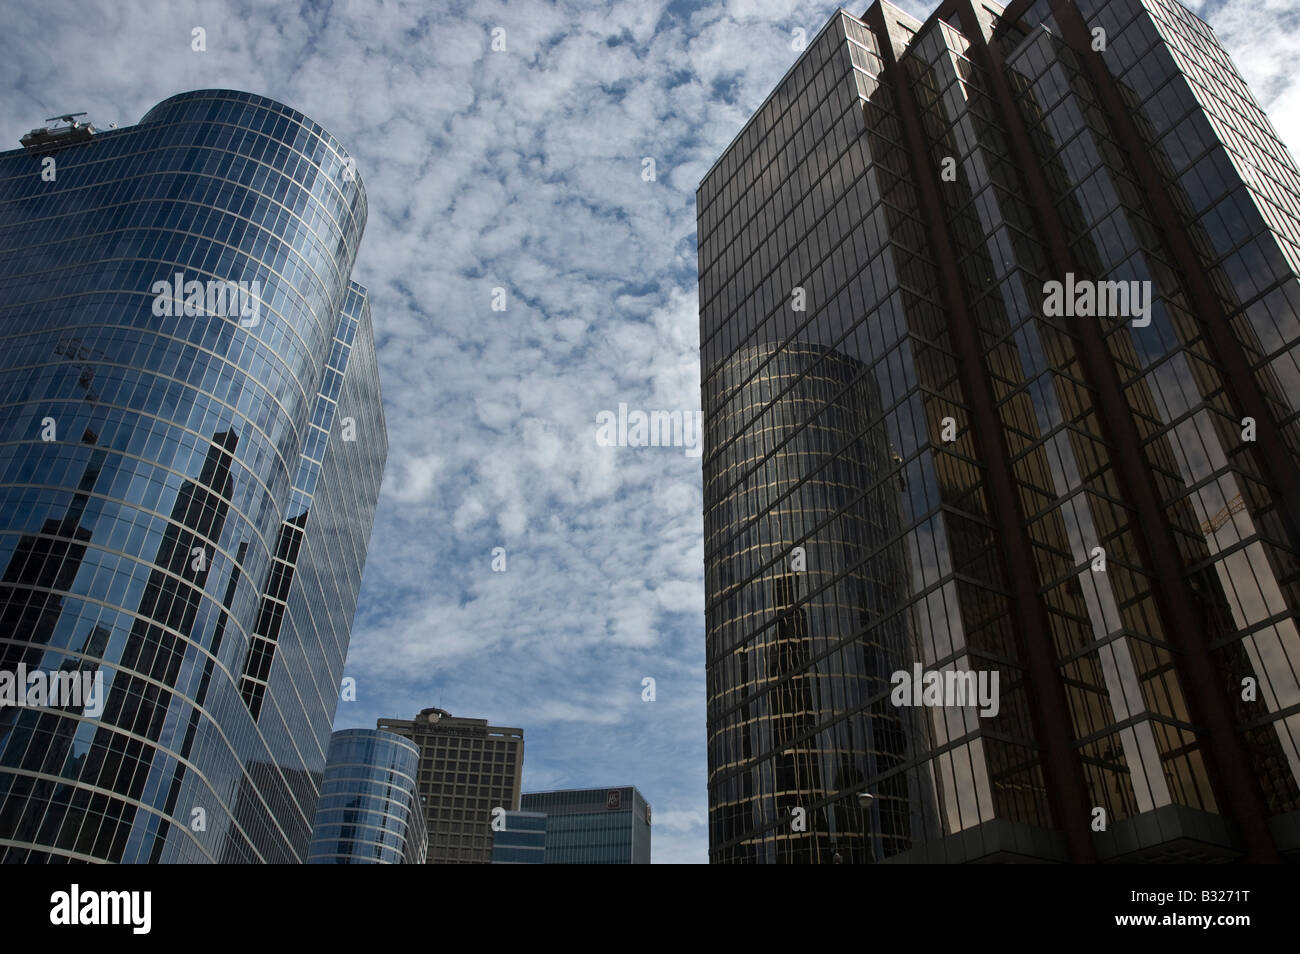 Downtown hi-rise buildings in Vancouver. - Stock Image